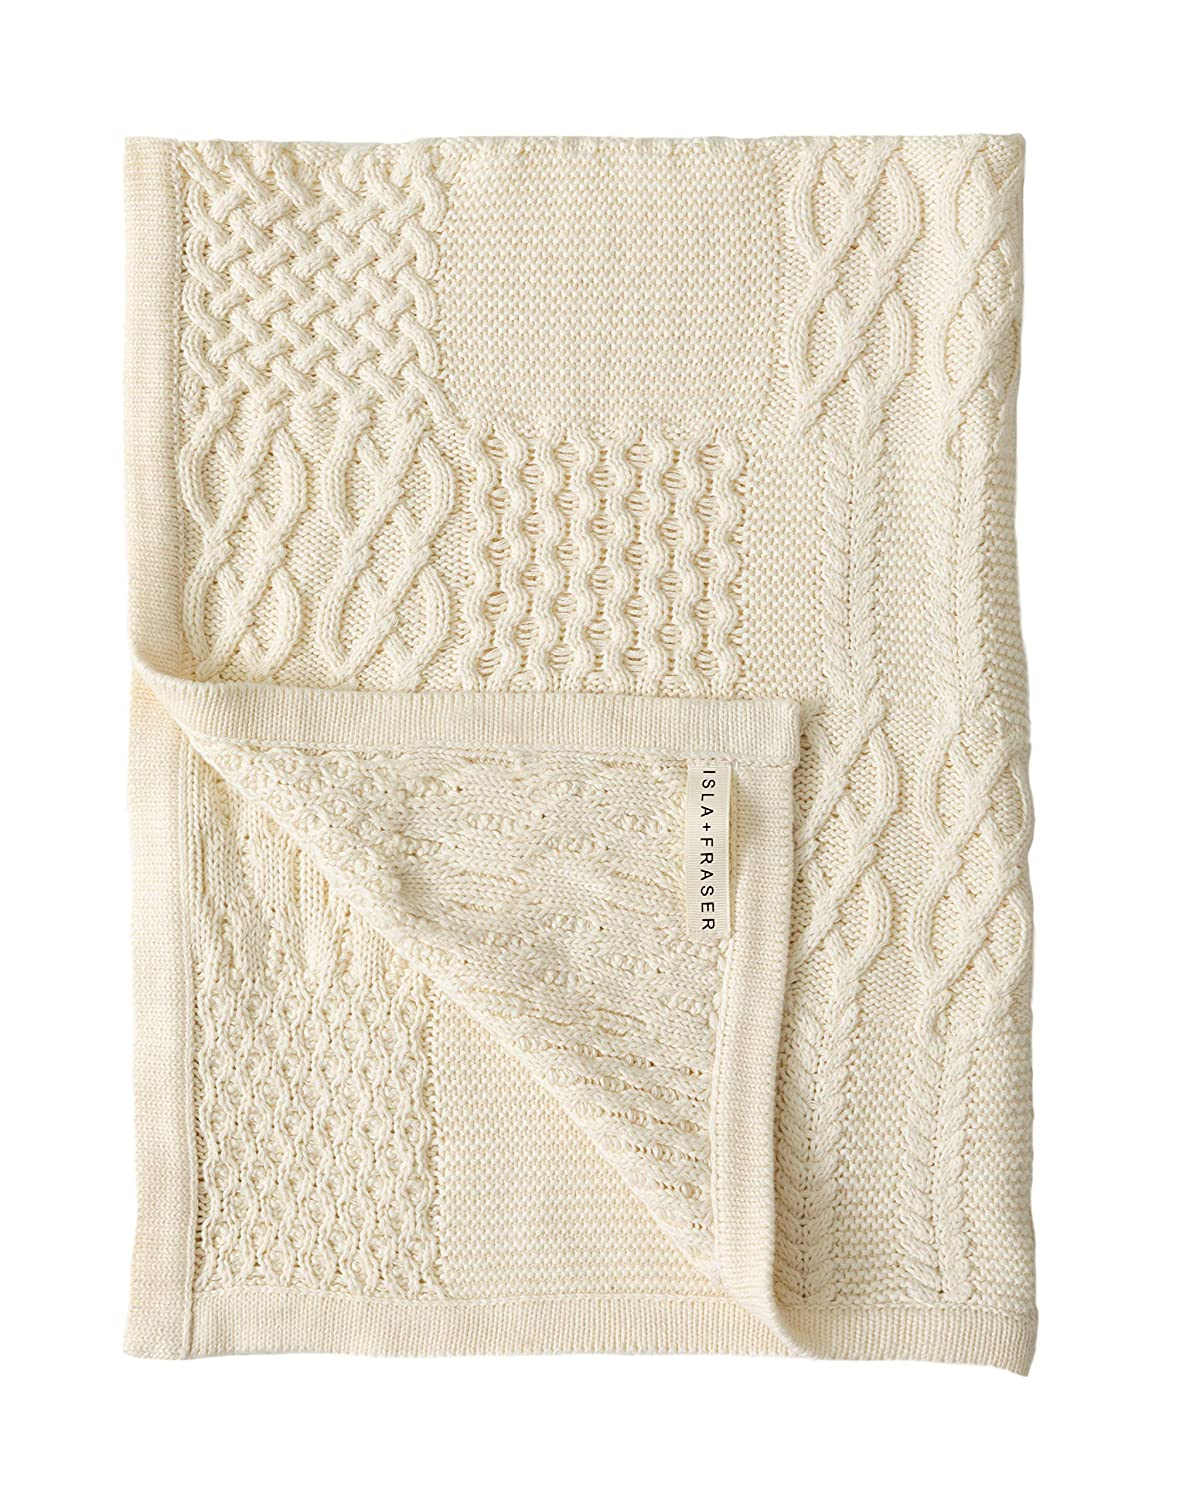 Isla Fraser Organic Cotton Baby Blanket 70cm x 90cm Cream Cable Knit